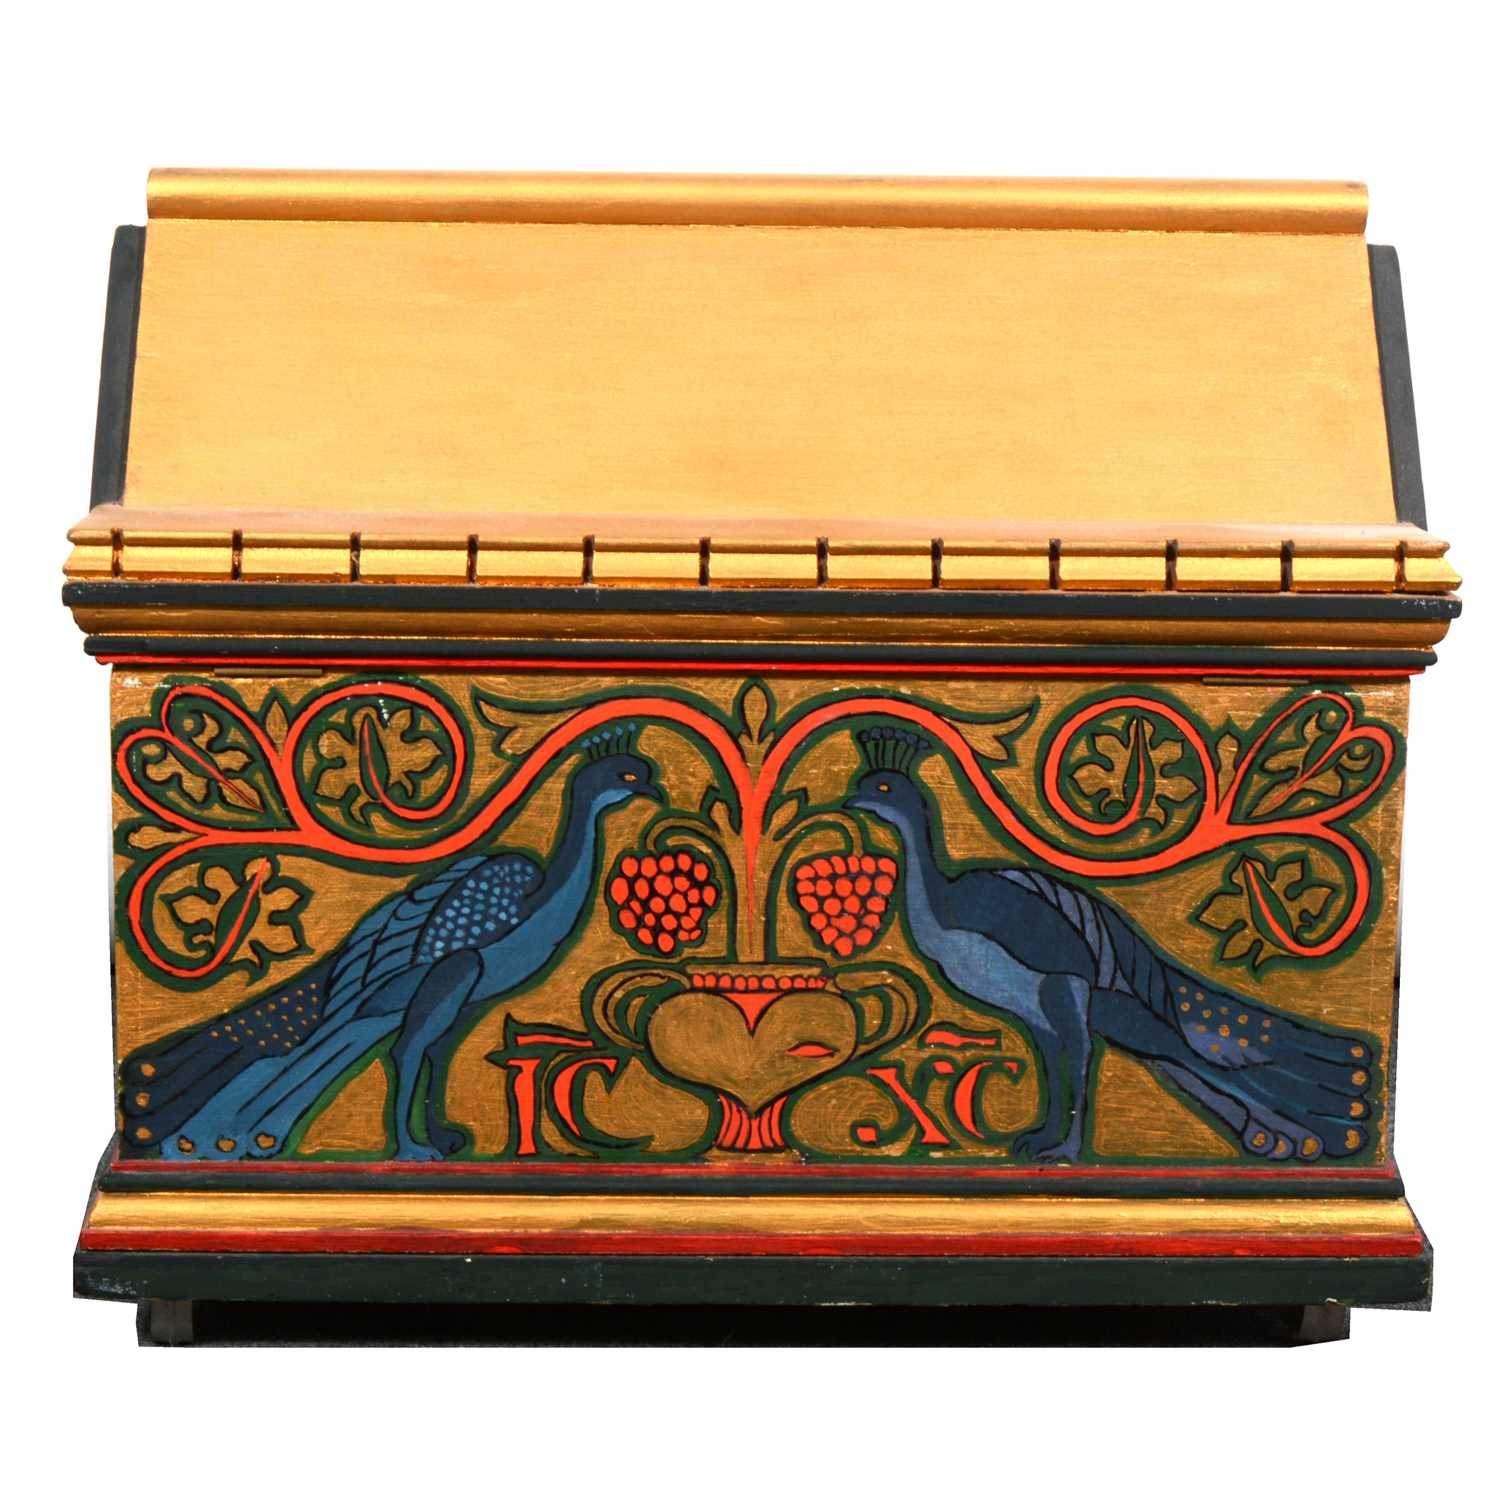 Lot 502-A contemporary Gothic style casket